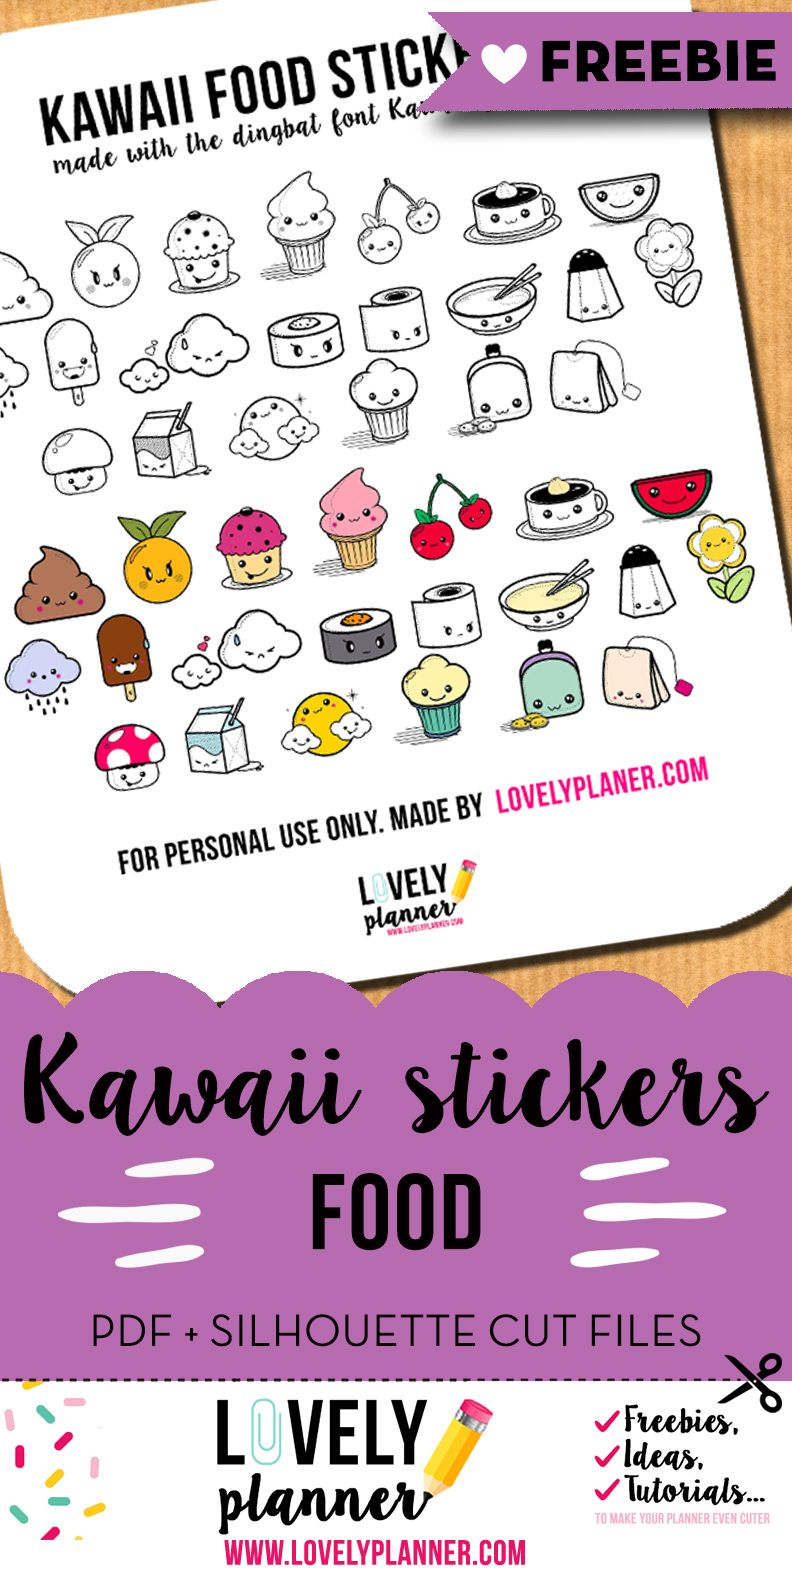 Free Printable Kawaii Food Planner Stickers From Lovelyplanner